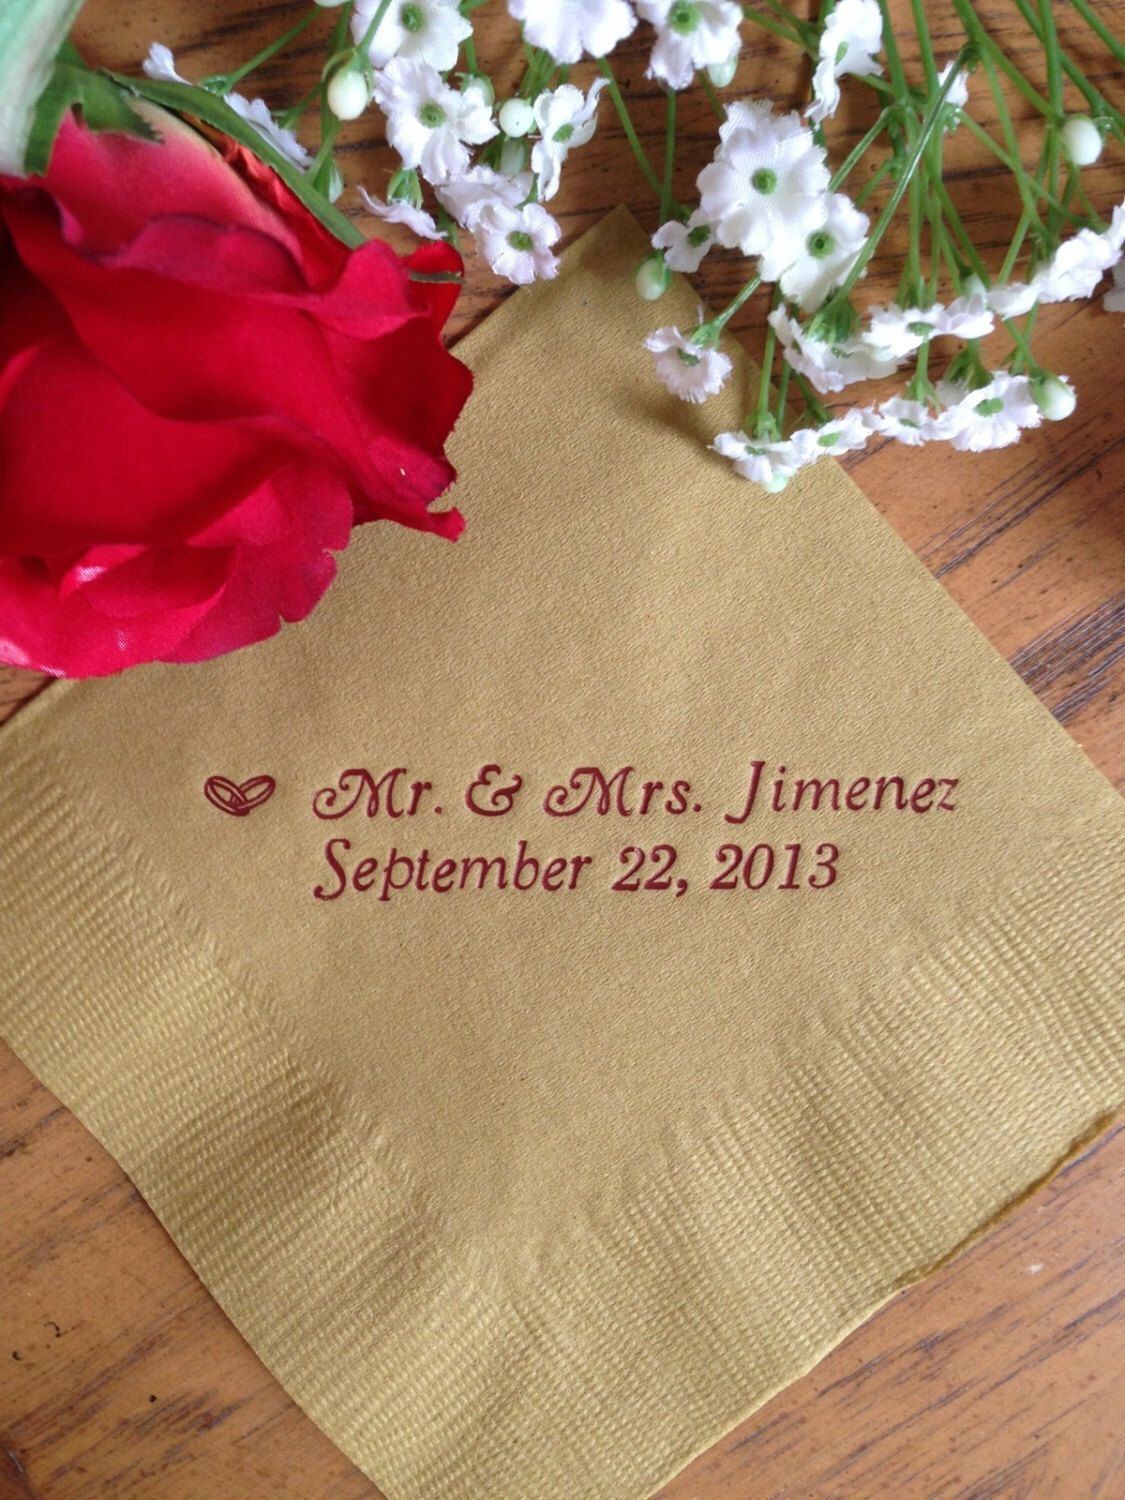 Personalized Napkins Personalized Napkins Wedding Personalized Cocktail Beverage Paper Anniversary Party Monogram Custom Luncheon Avail! by MemorableWedding on Etsy https://www.etsy.com/listing/162859389/personalized-napkins-personalized